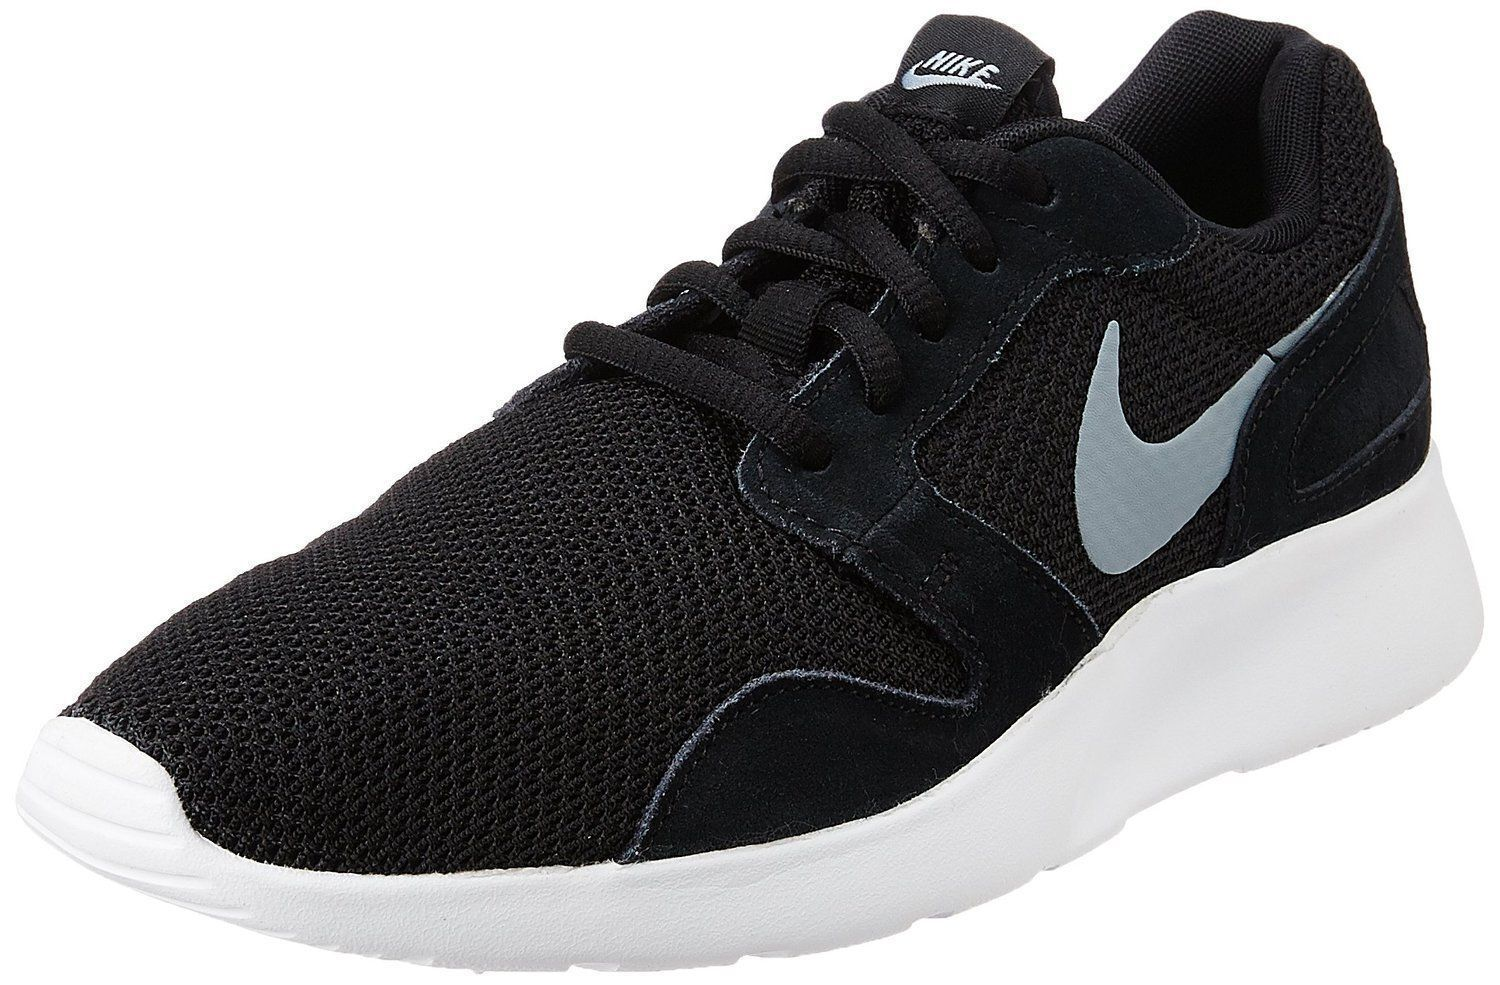 NIKE KAISHI DRS LOW SNEAKERS SHOES BLACK WHITE 654473-010 SIZE 12 NEW